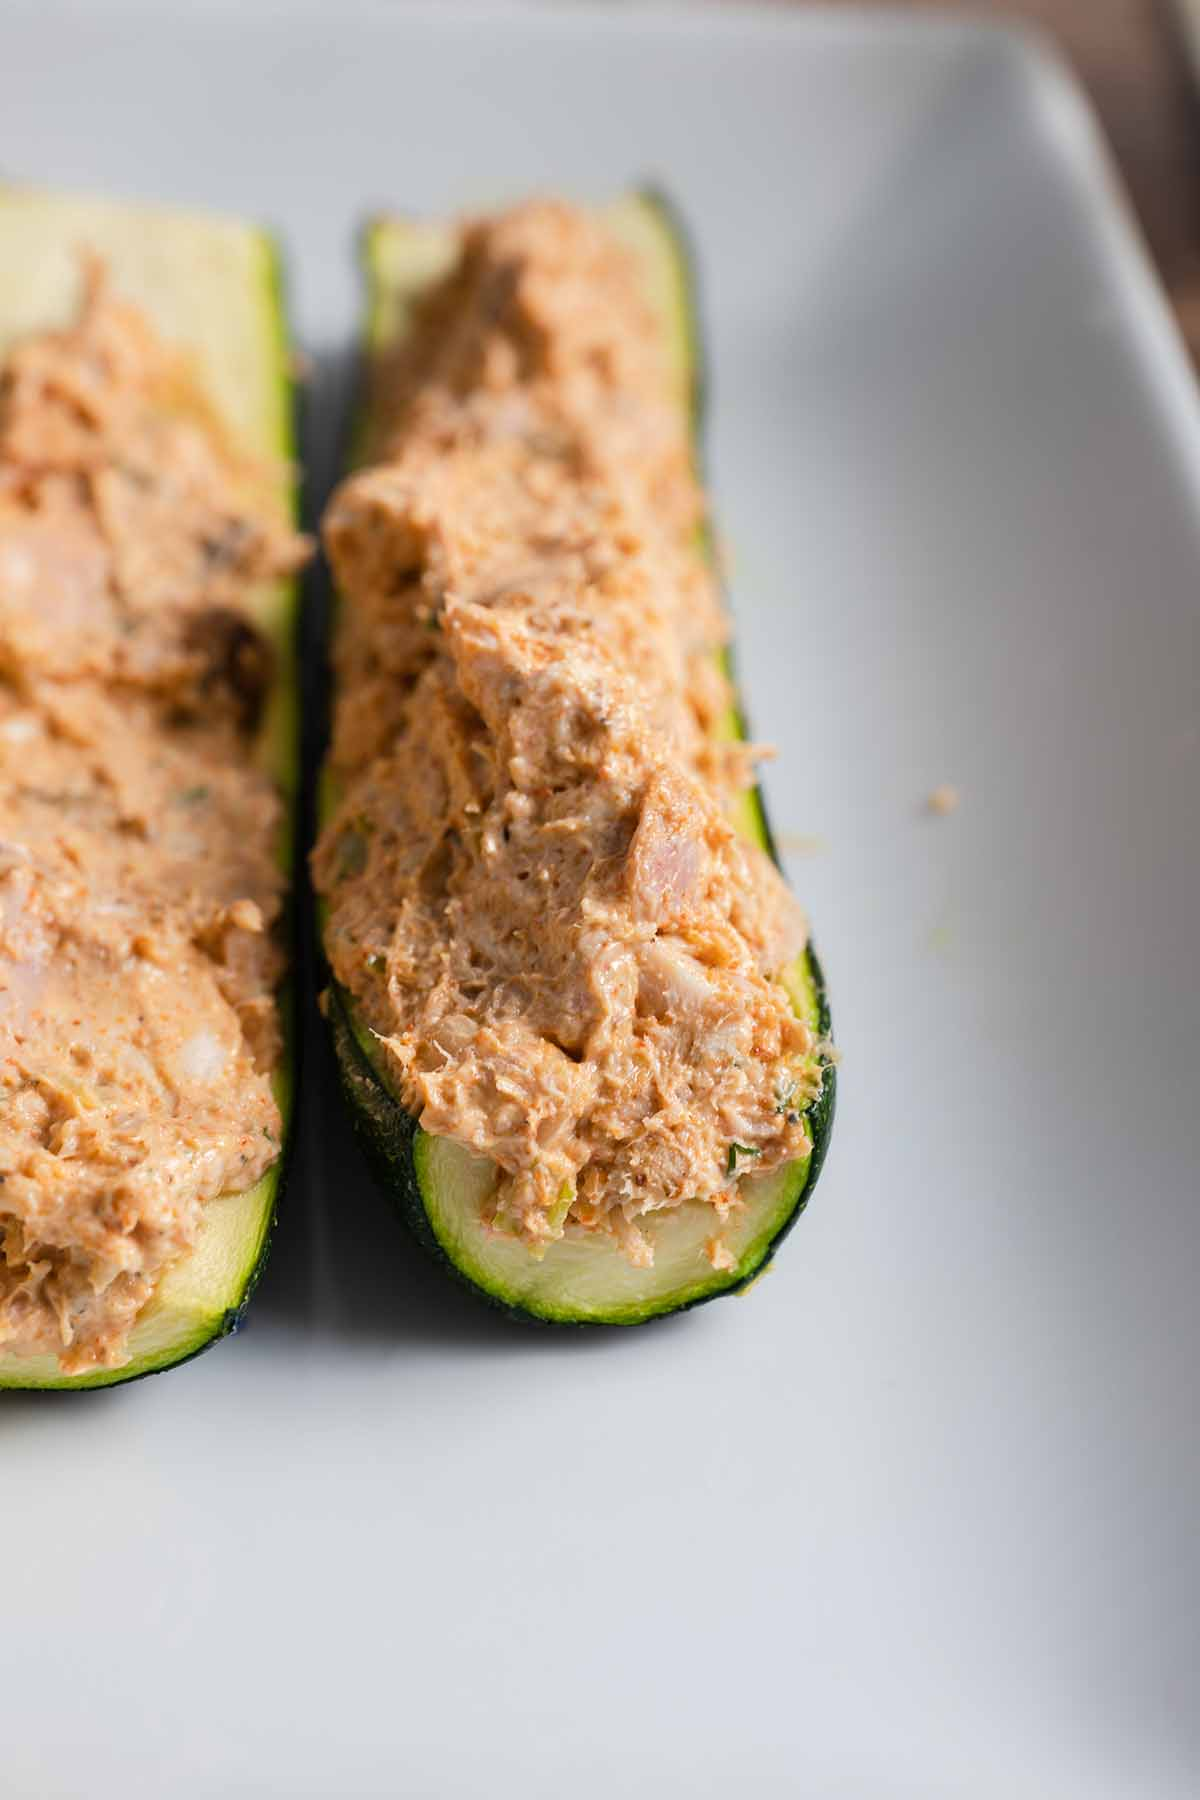 zucchini shells filled with mixture